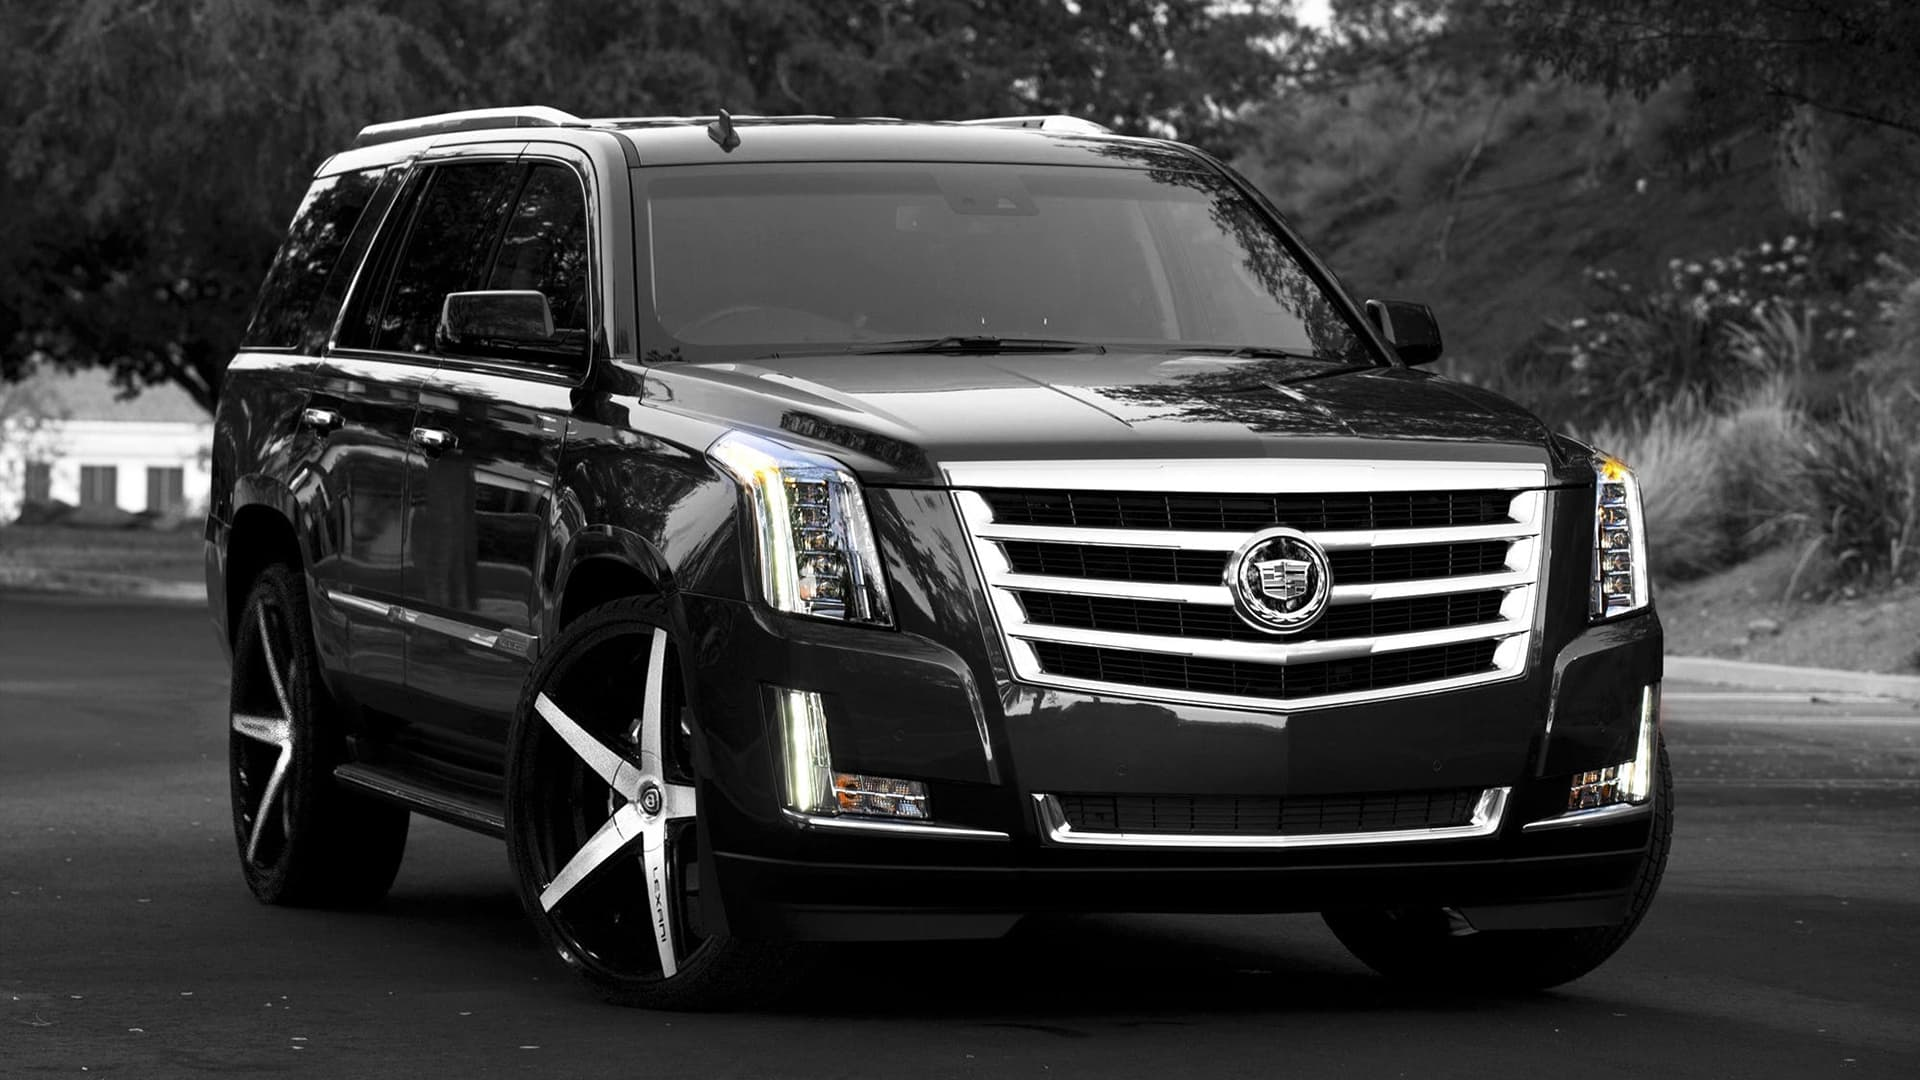 2014 Cadillac Suv All About New Car 428i Bmw Engine Diagram 20 Escalade Wallpapers Hd